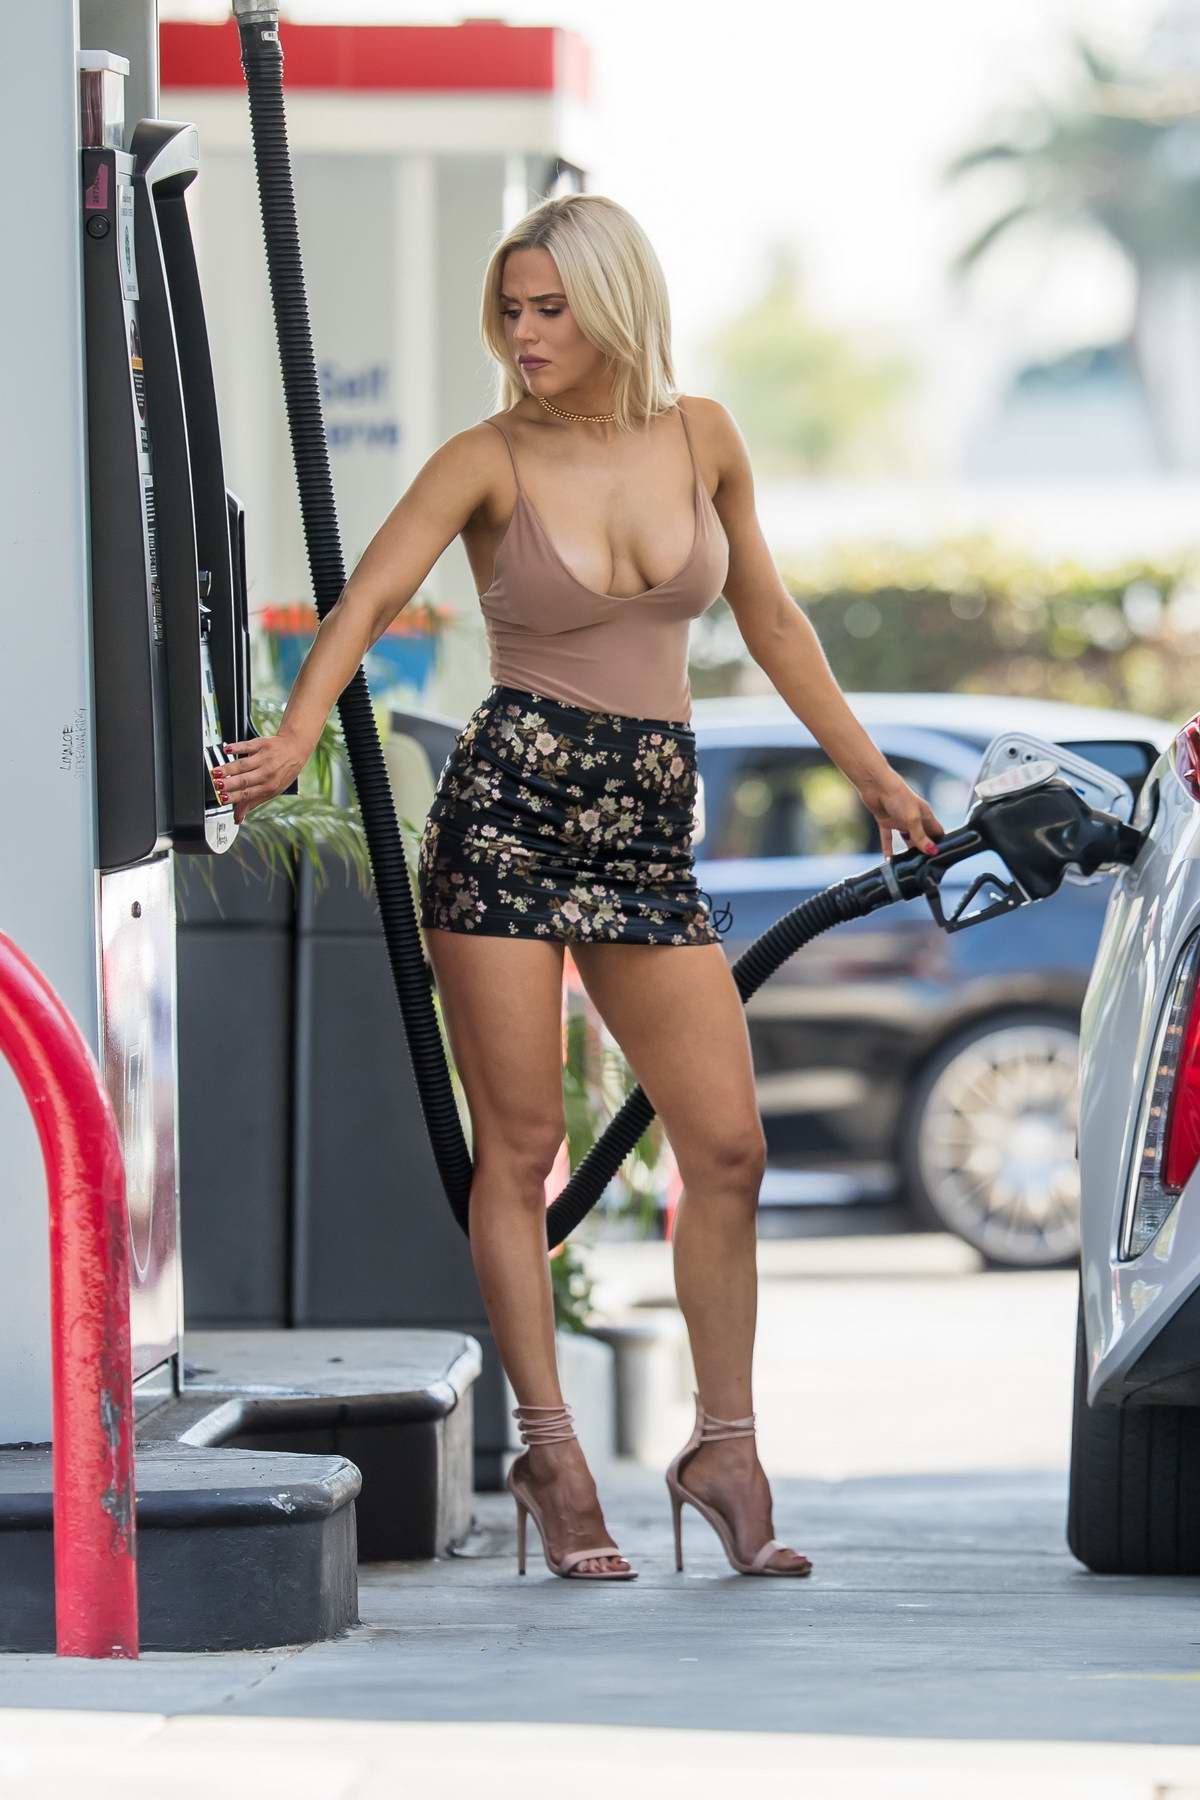 CJ 'Lana' Perry stops by a gas station in Beverly Hills, Los Angeles